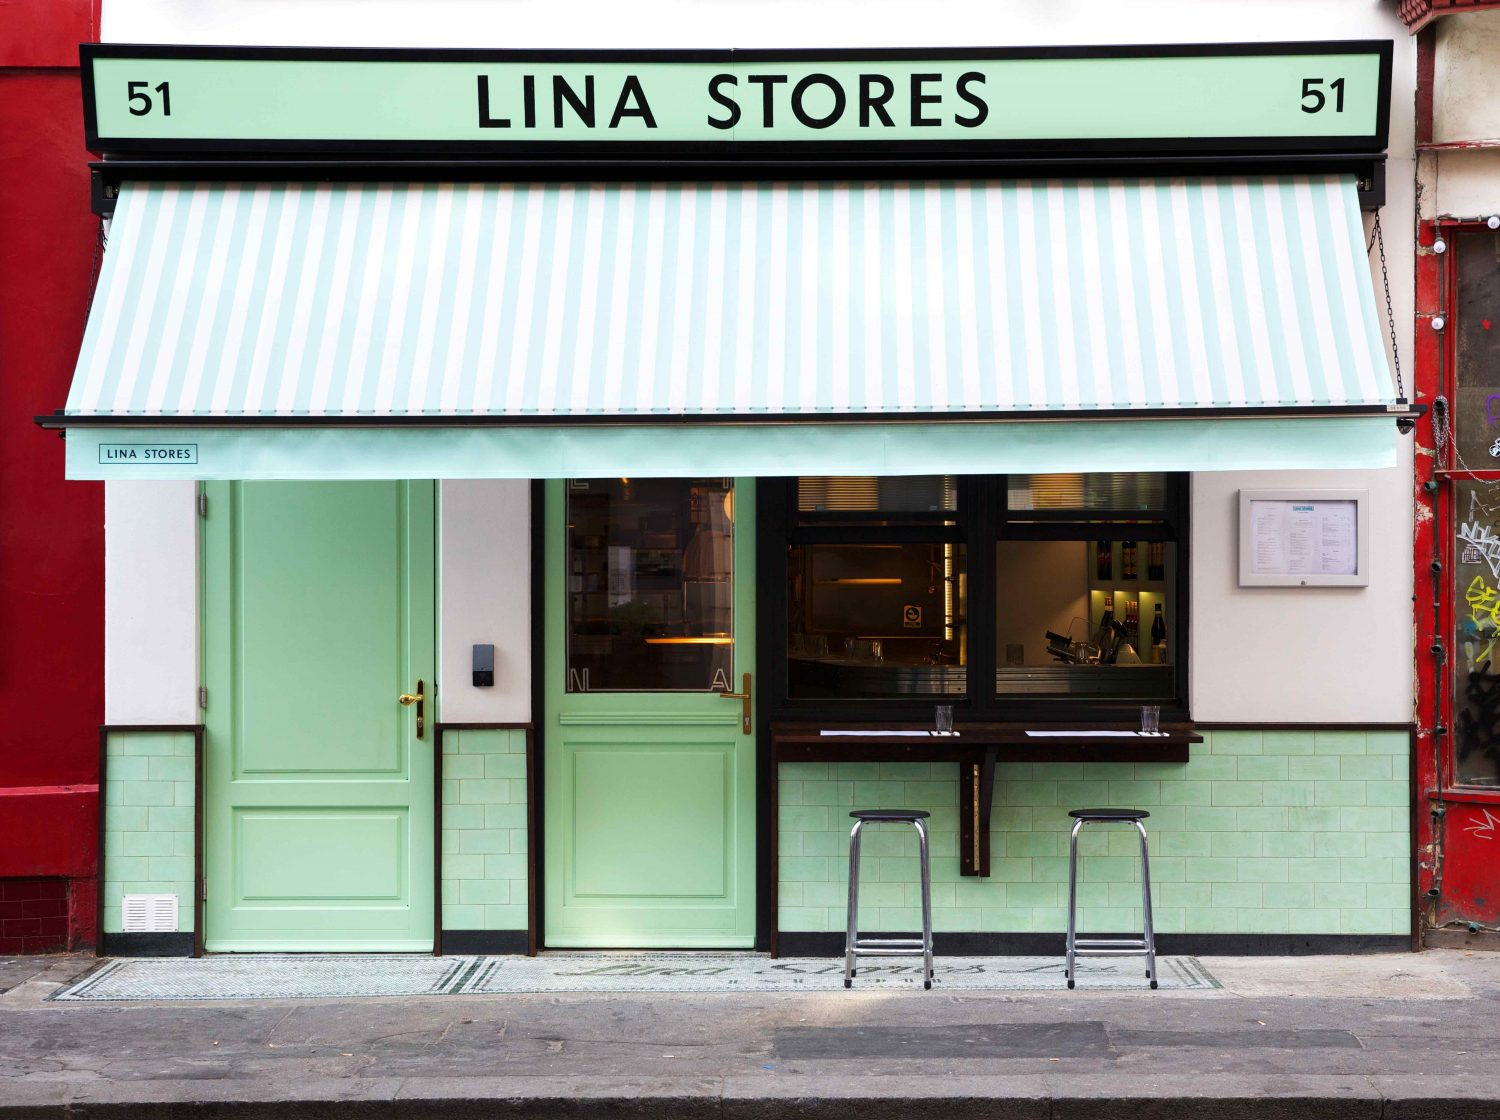 Lina Stores - Iconic Italian Deli in Soho opens its own restaurant in the city, with outdoor seats in the heart of the city